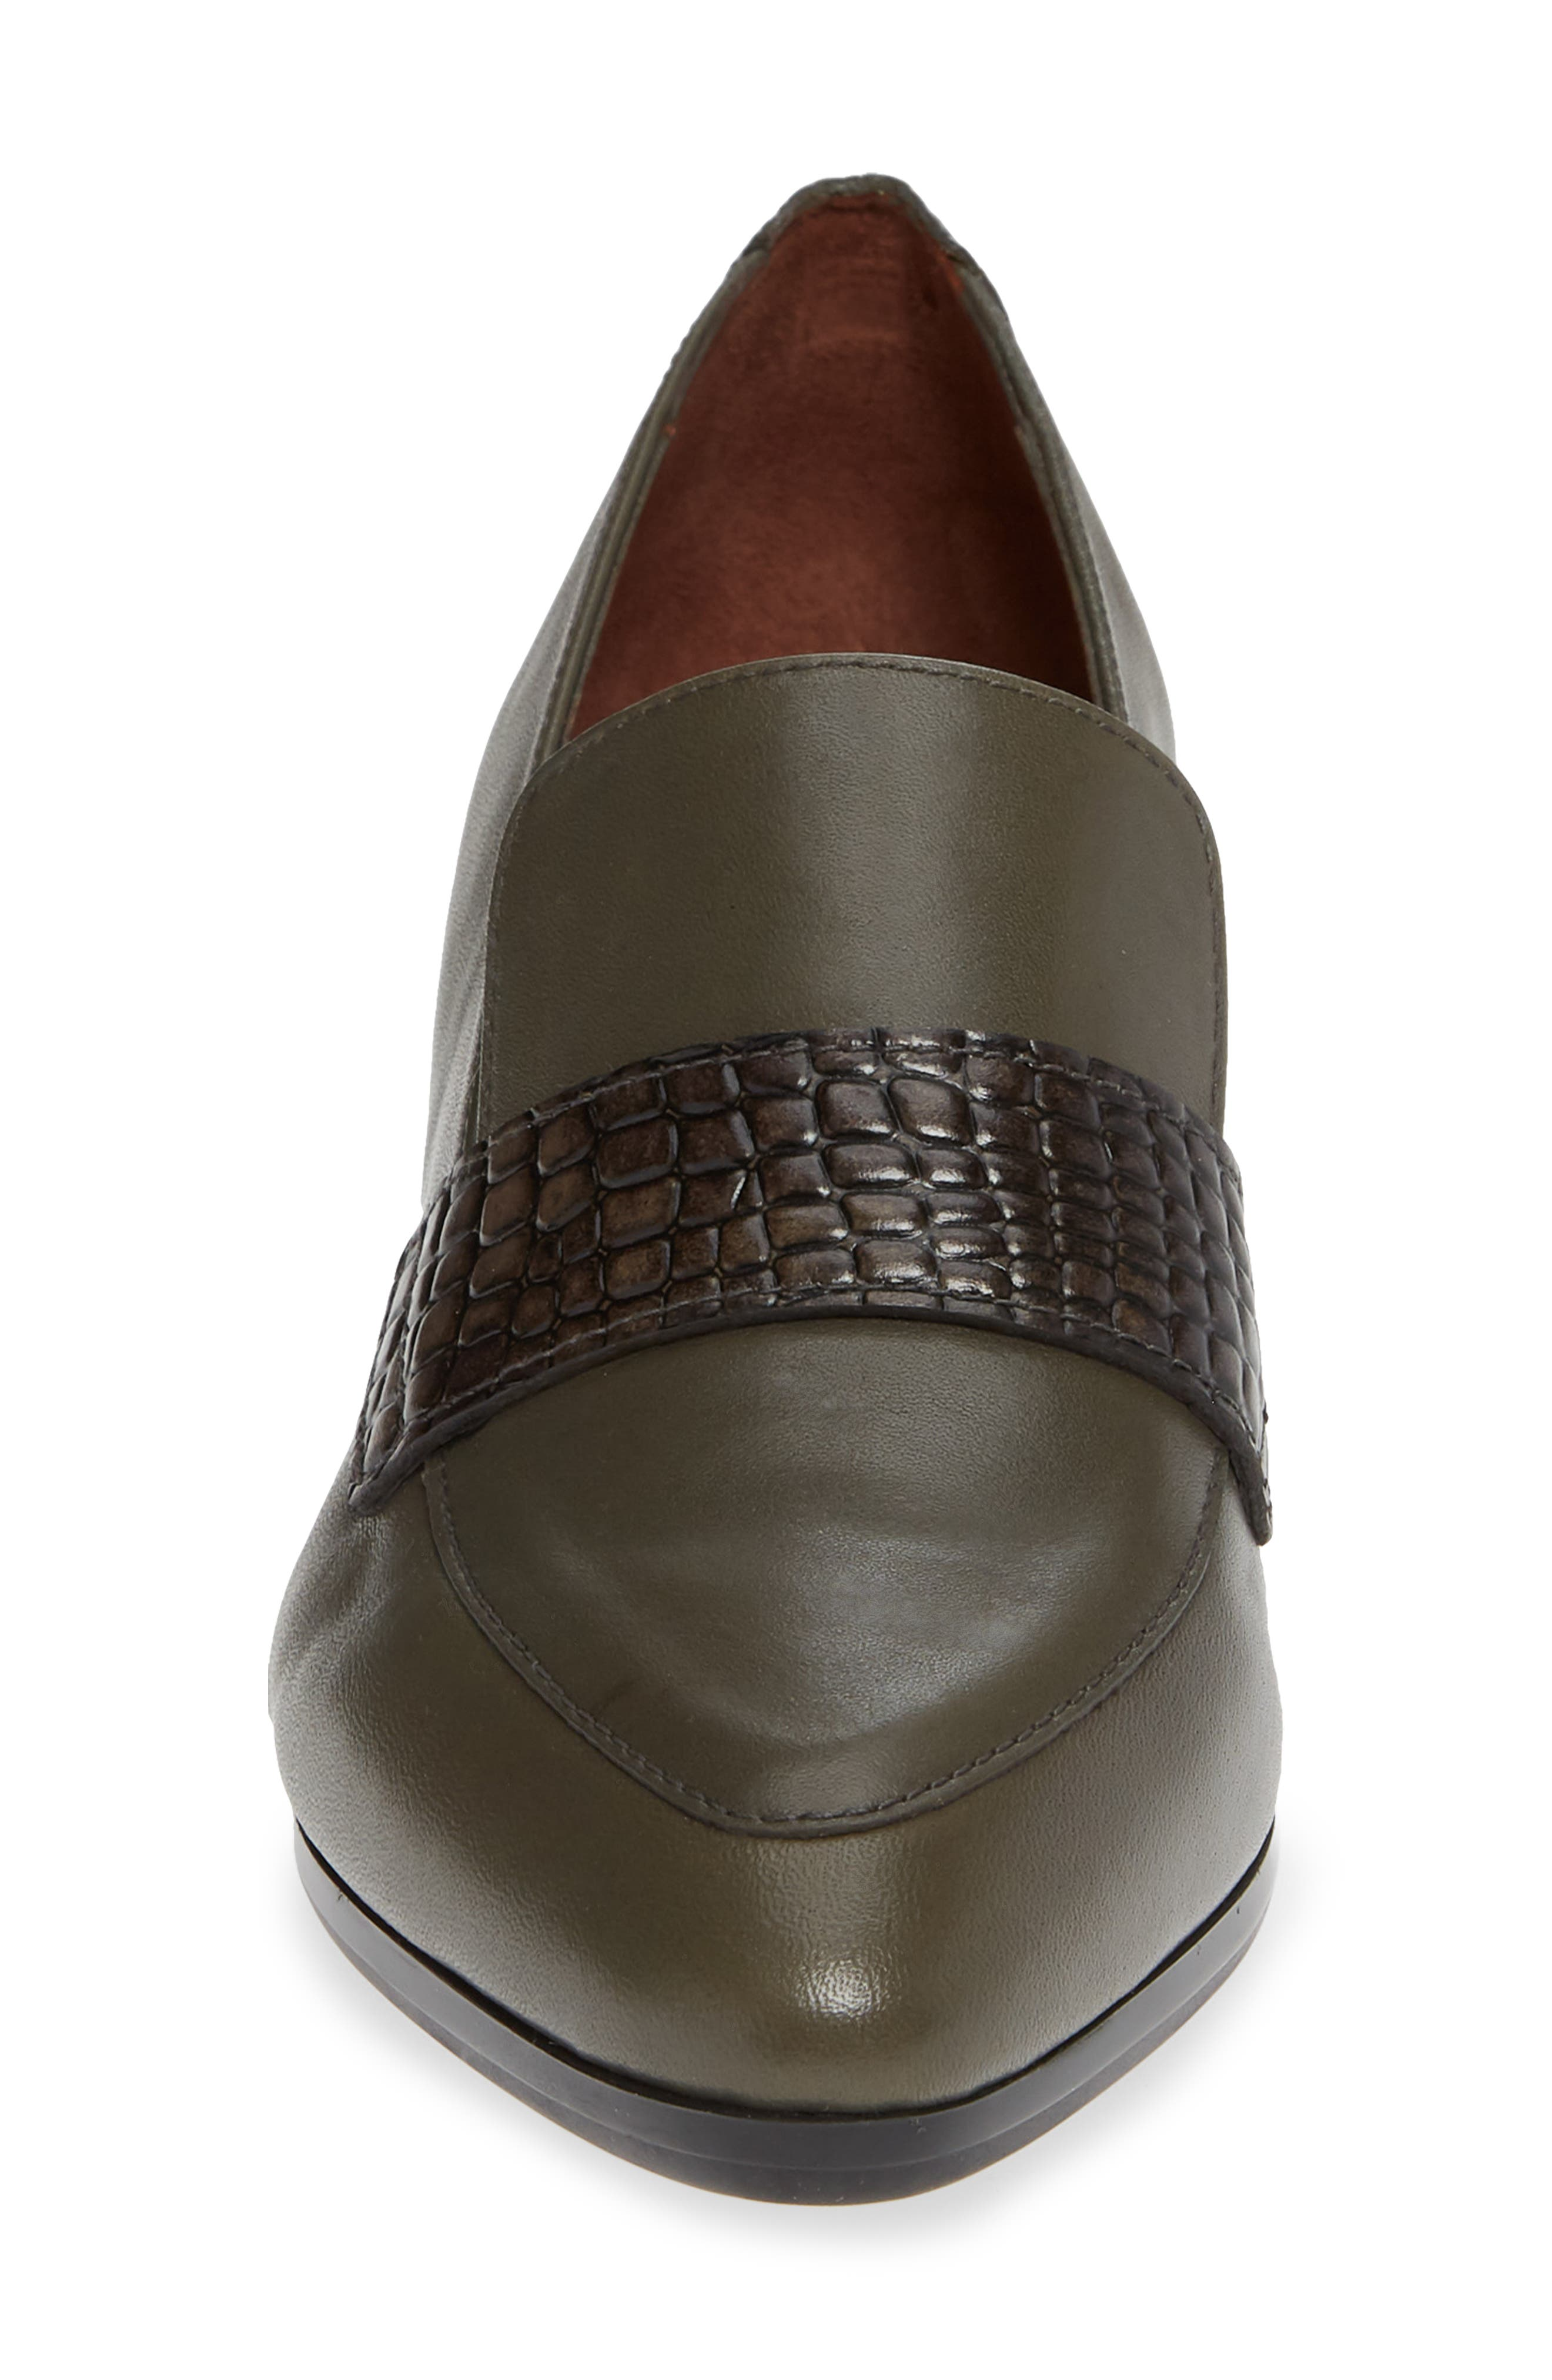 HISPANITAS,                             Gabrianna Block Heel Loafer,                             Alternate thumbnail 4, color,                             SOHO ARMY/ CAIMAN ARMY LEATHER